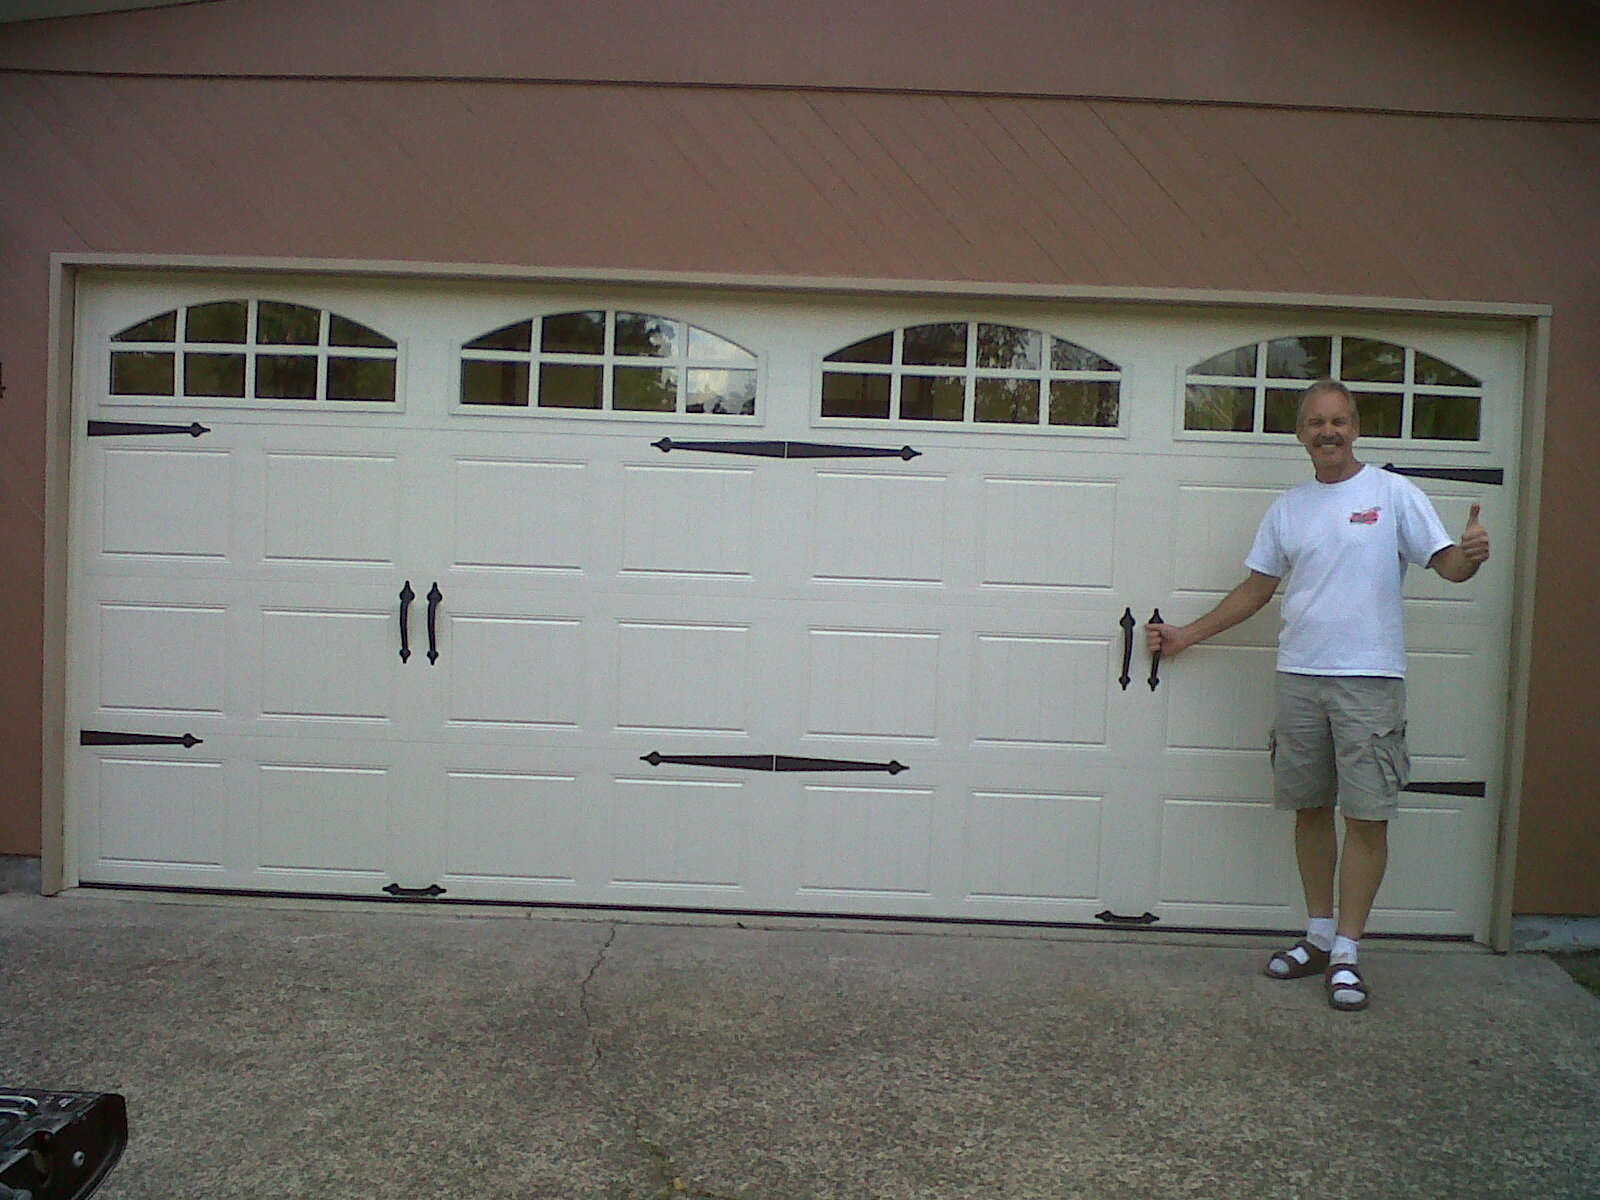 1200 #556376 With Roller Ever Green Garage Doors $ 75 For A Keyless Garage Door  wallpaper Best Deal On Garage Doors 37551600